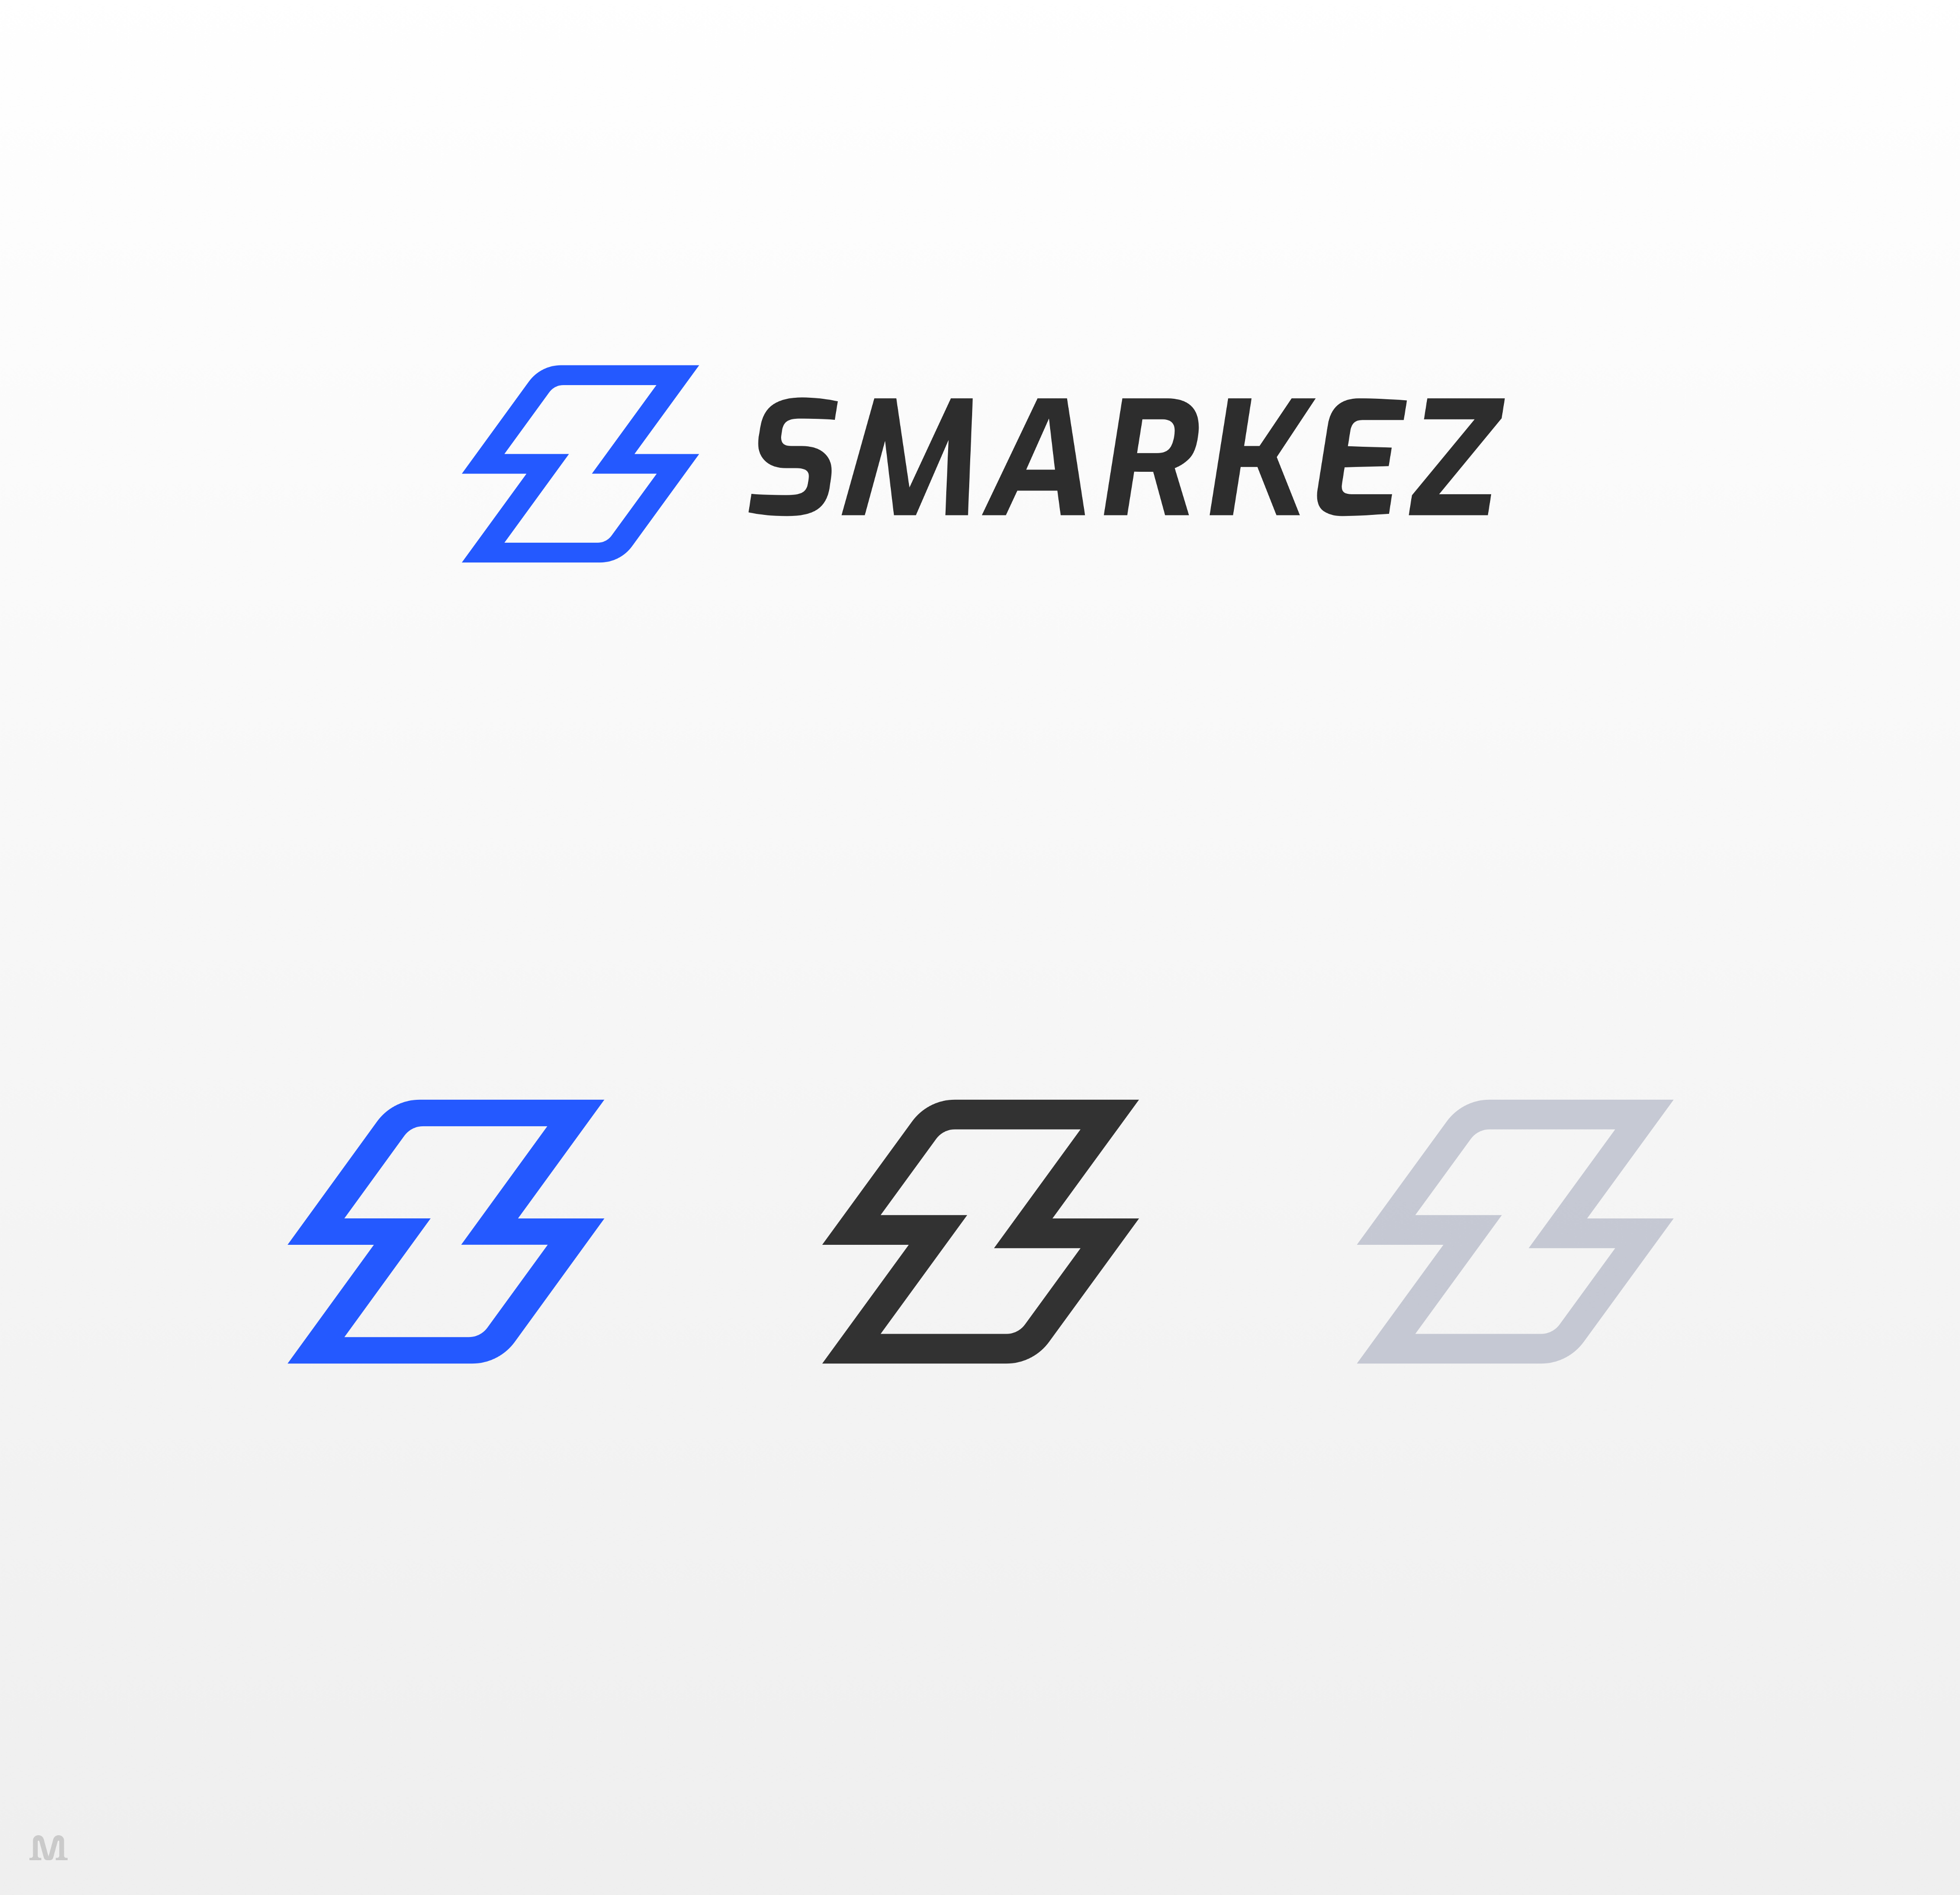 Smarkez browser logo redesign by Marcello Di Giovanni www.marcellodigiovanni.design